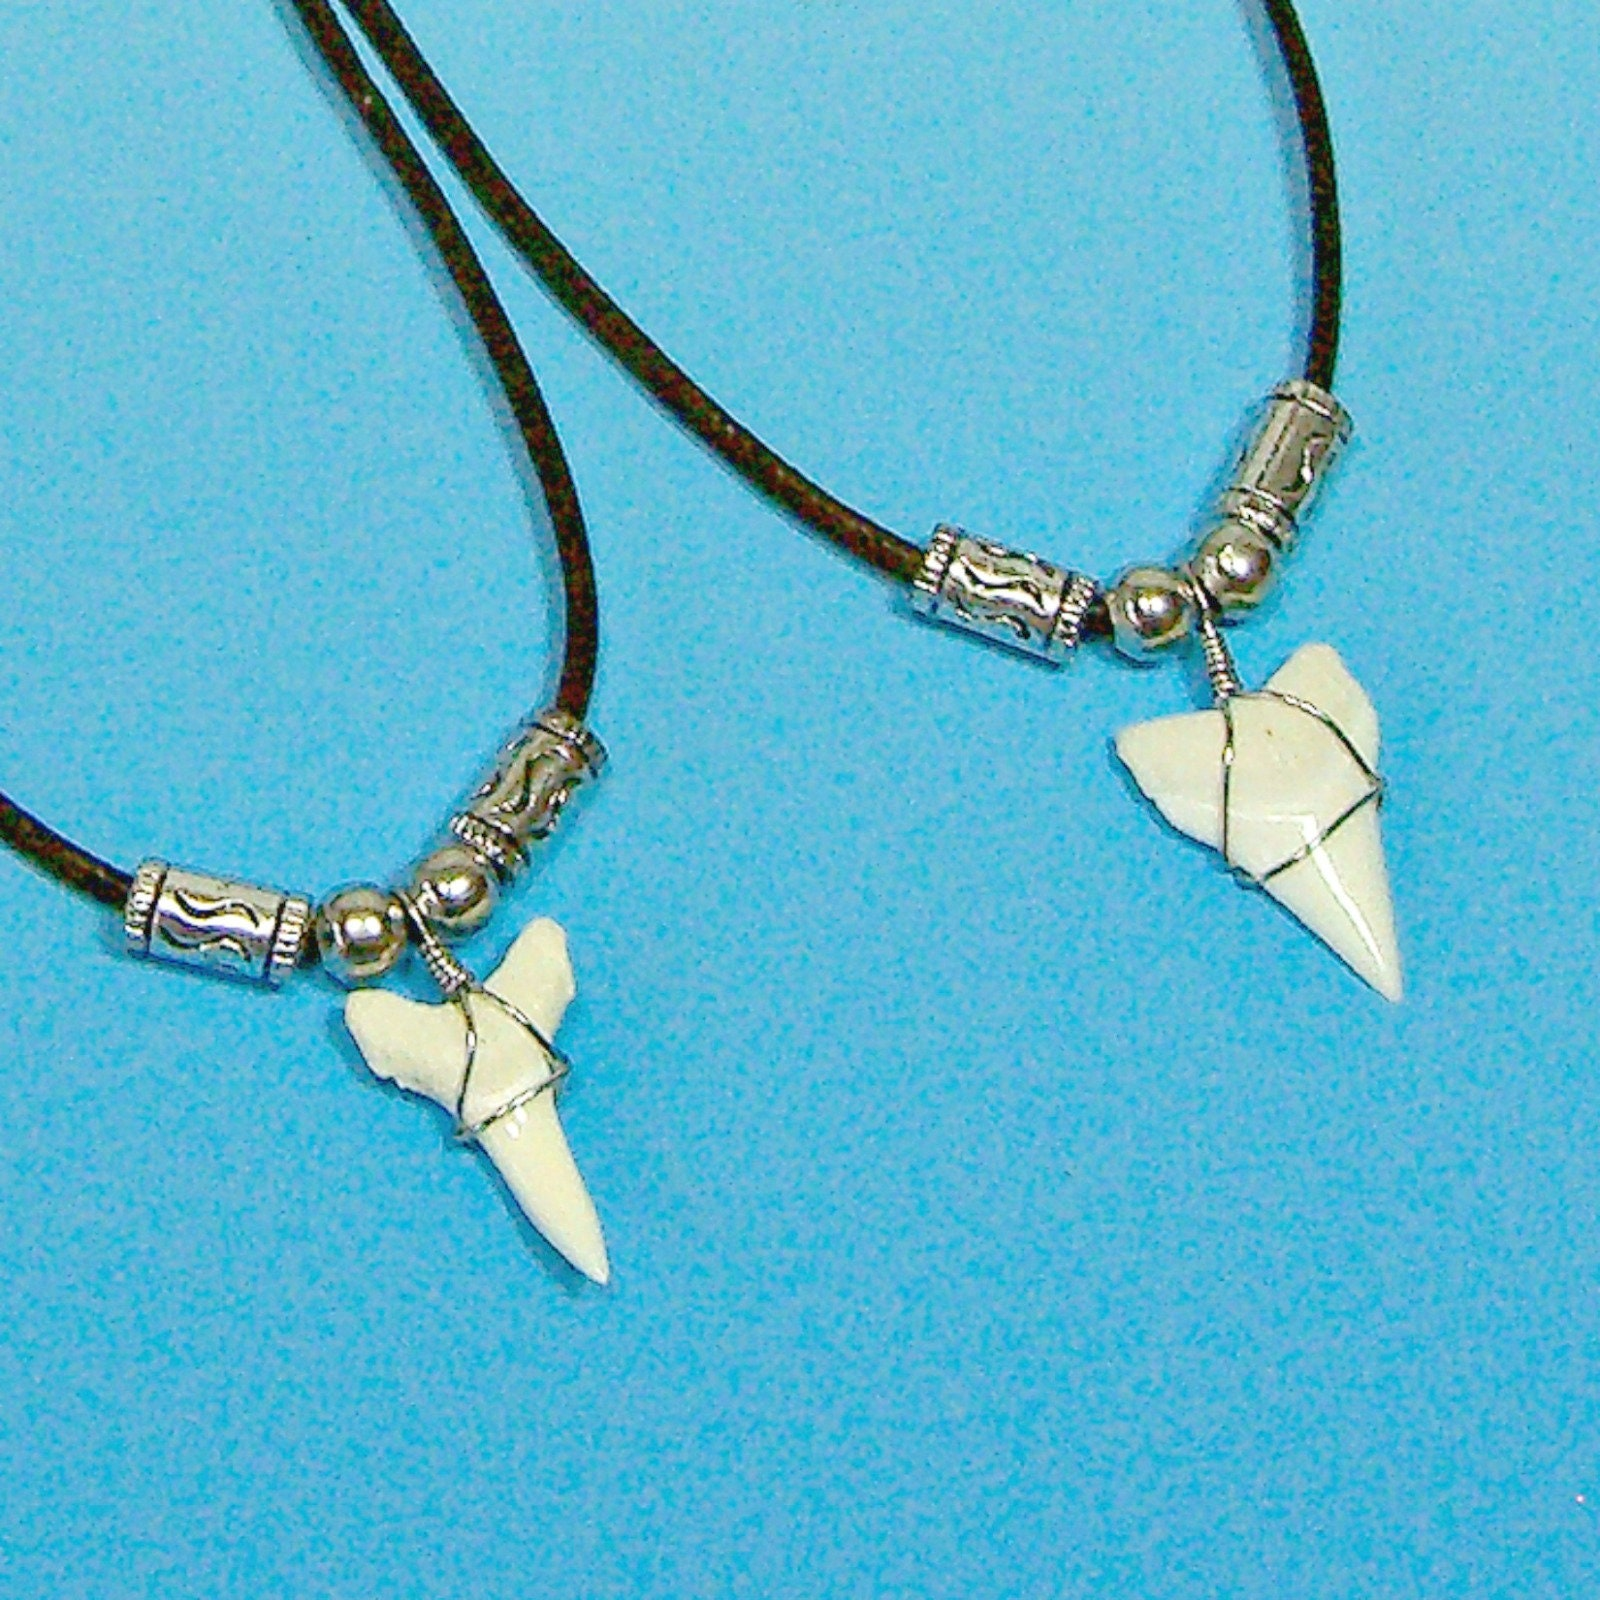 Large shark tooth pendant beads black cord necklace